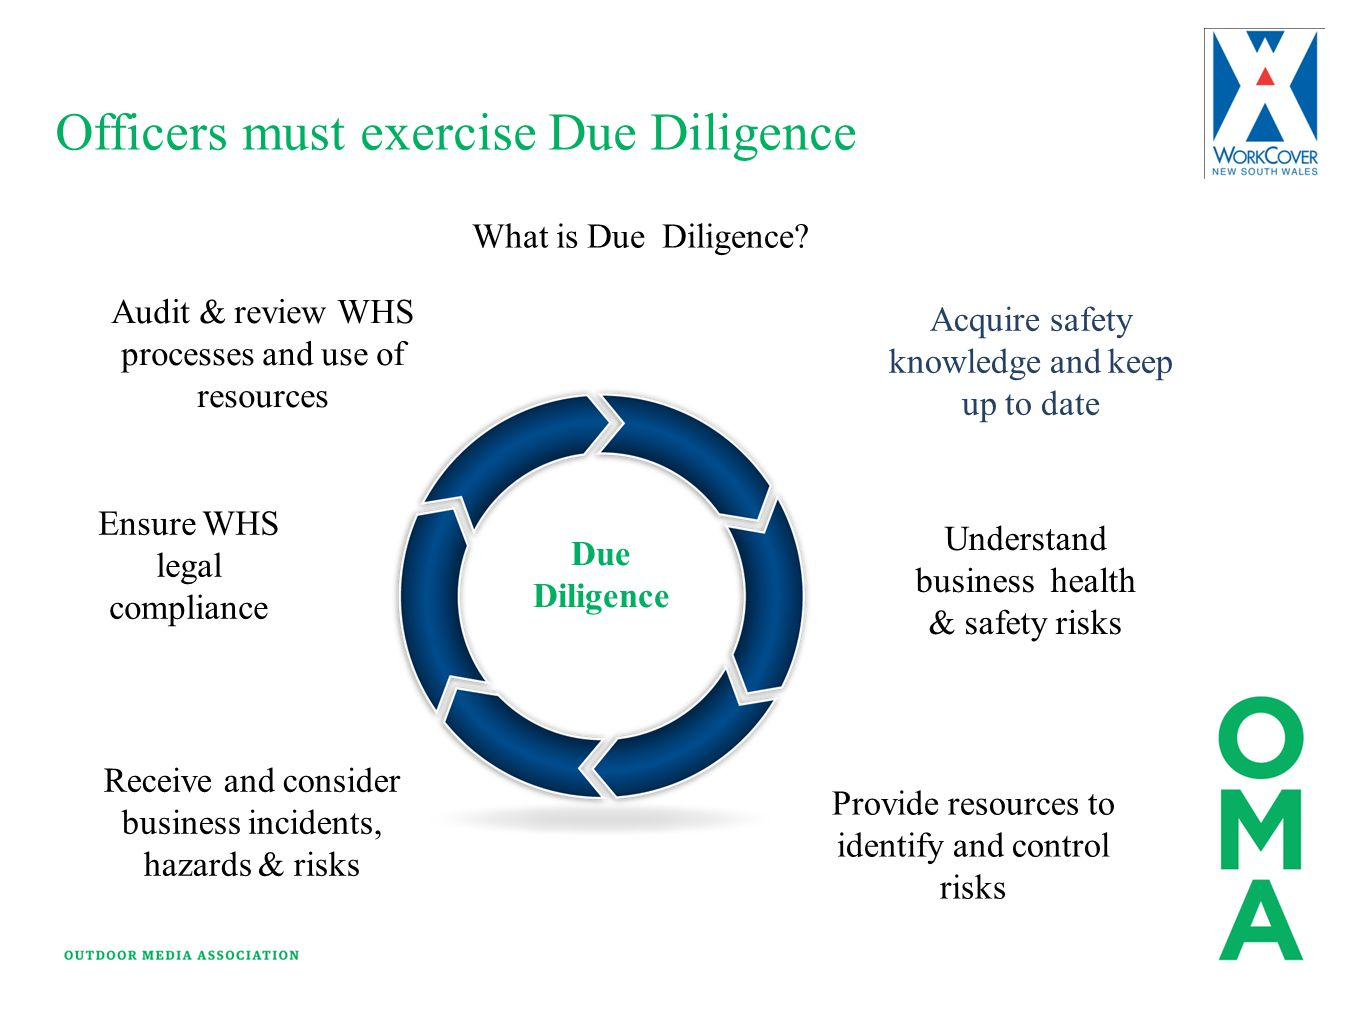 Officers must exercise Due Diligence